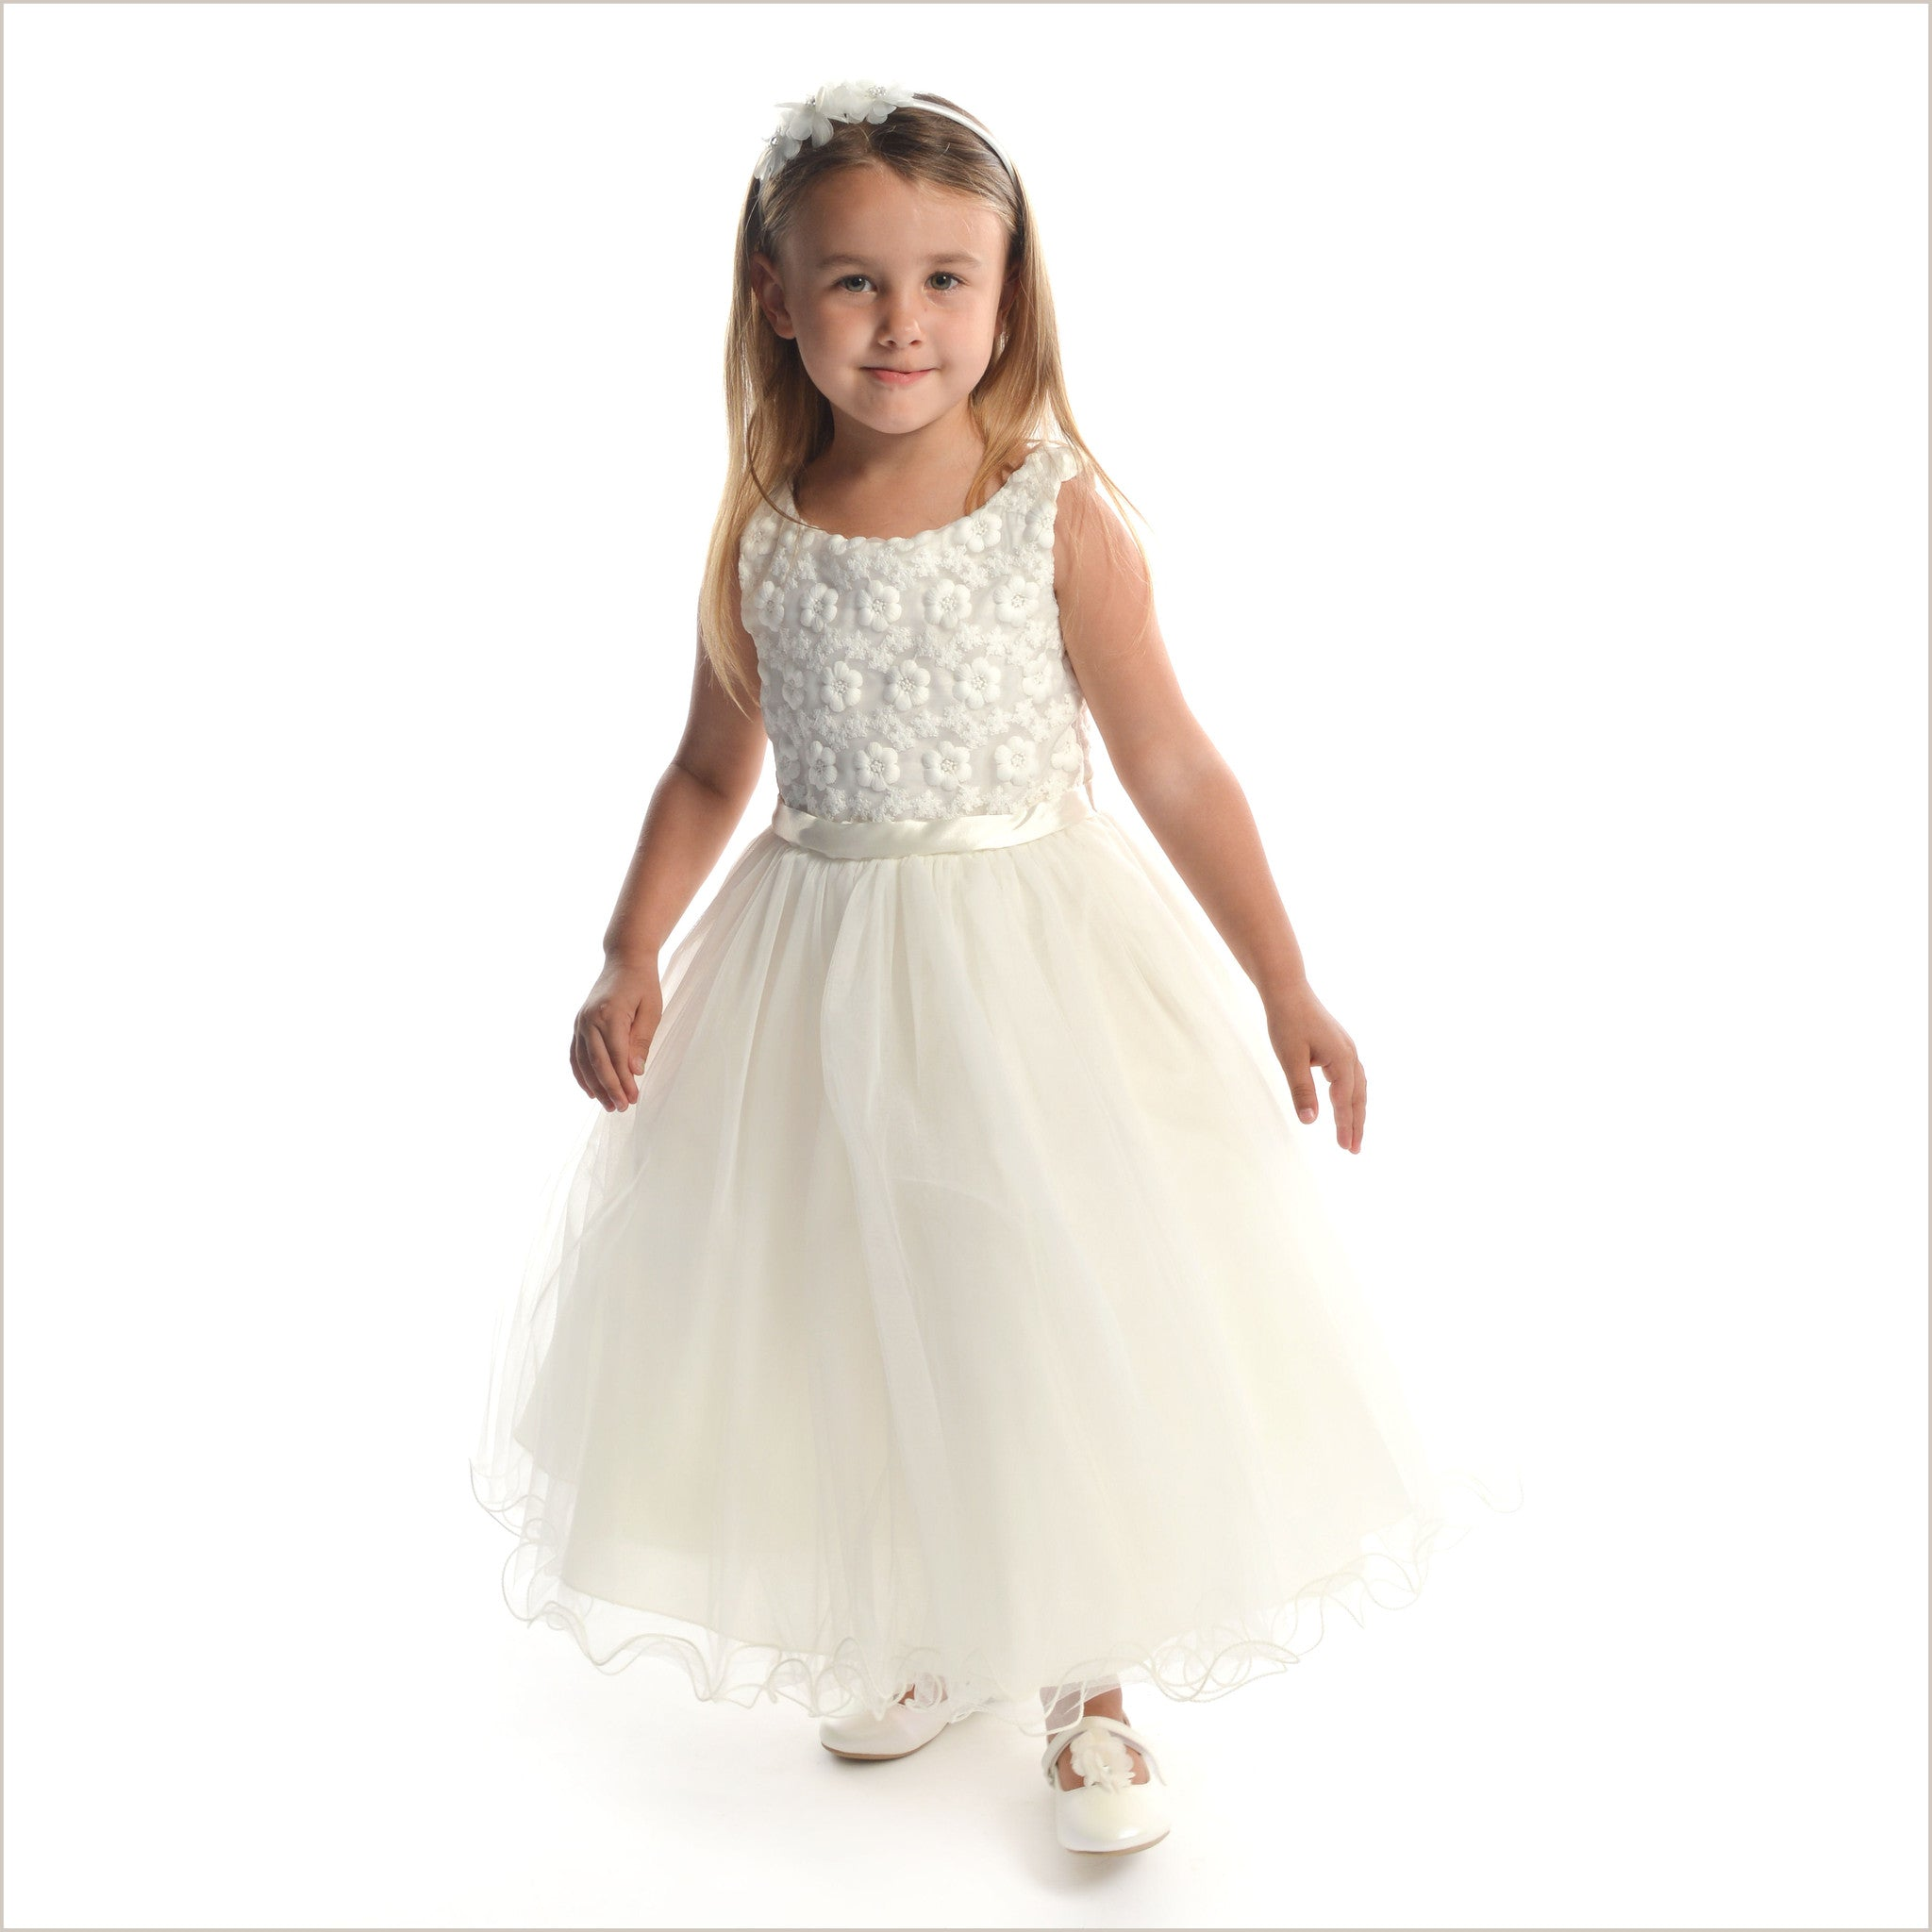 Ivory Flower Girl Dress Daisy with Floral Bodice for Child ...